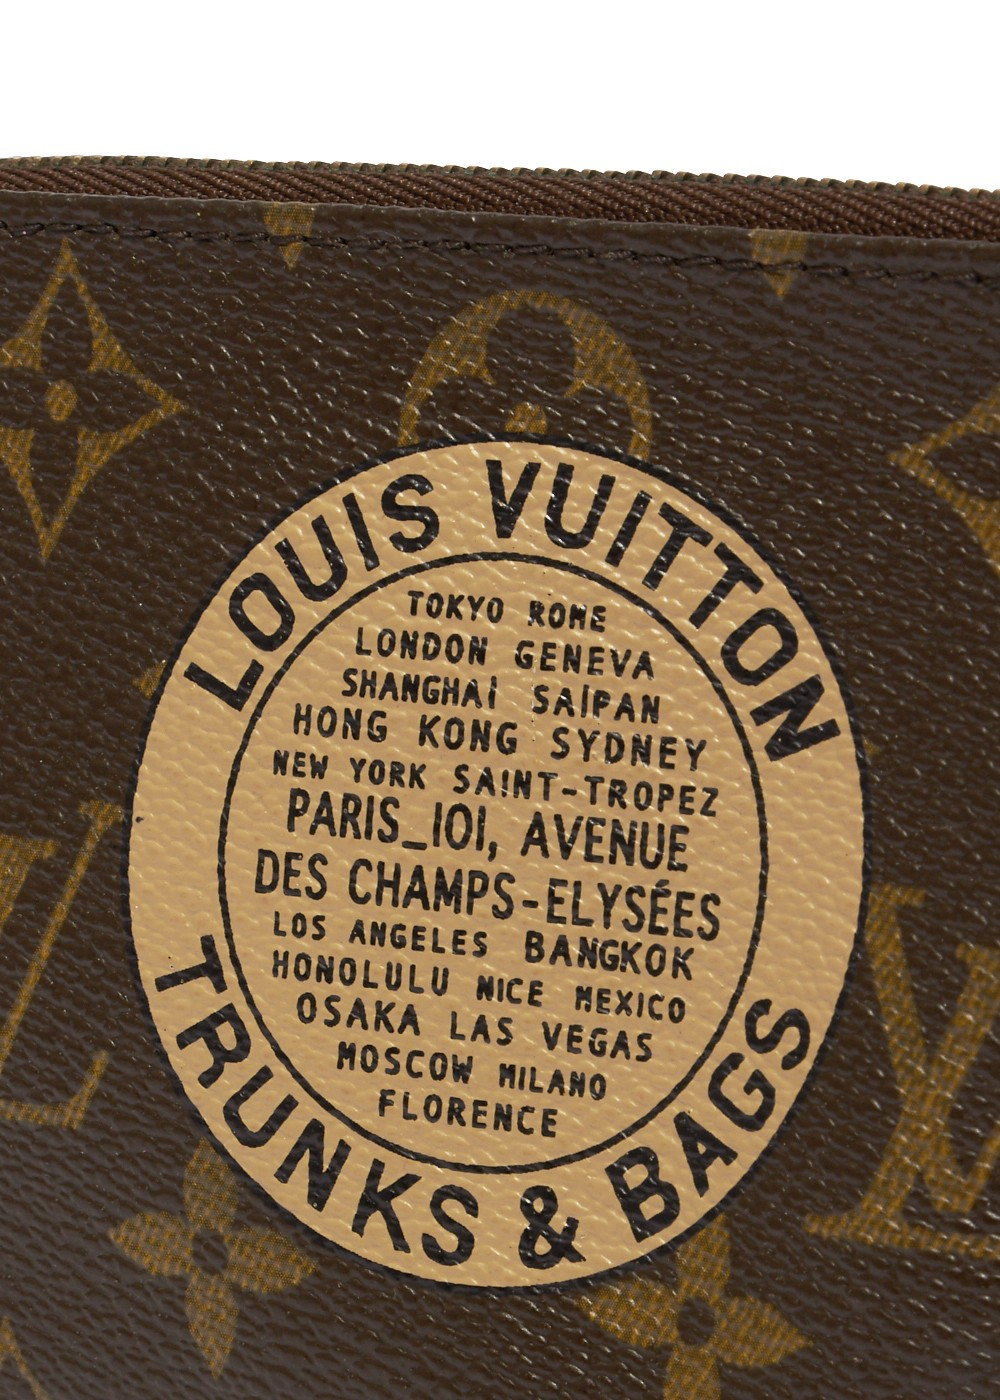 Louis Vuitton ミニアクセポT&B|OTHER|ポーチ|VINTAGE BRAND COLLECTION_(I)